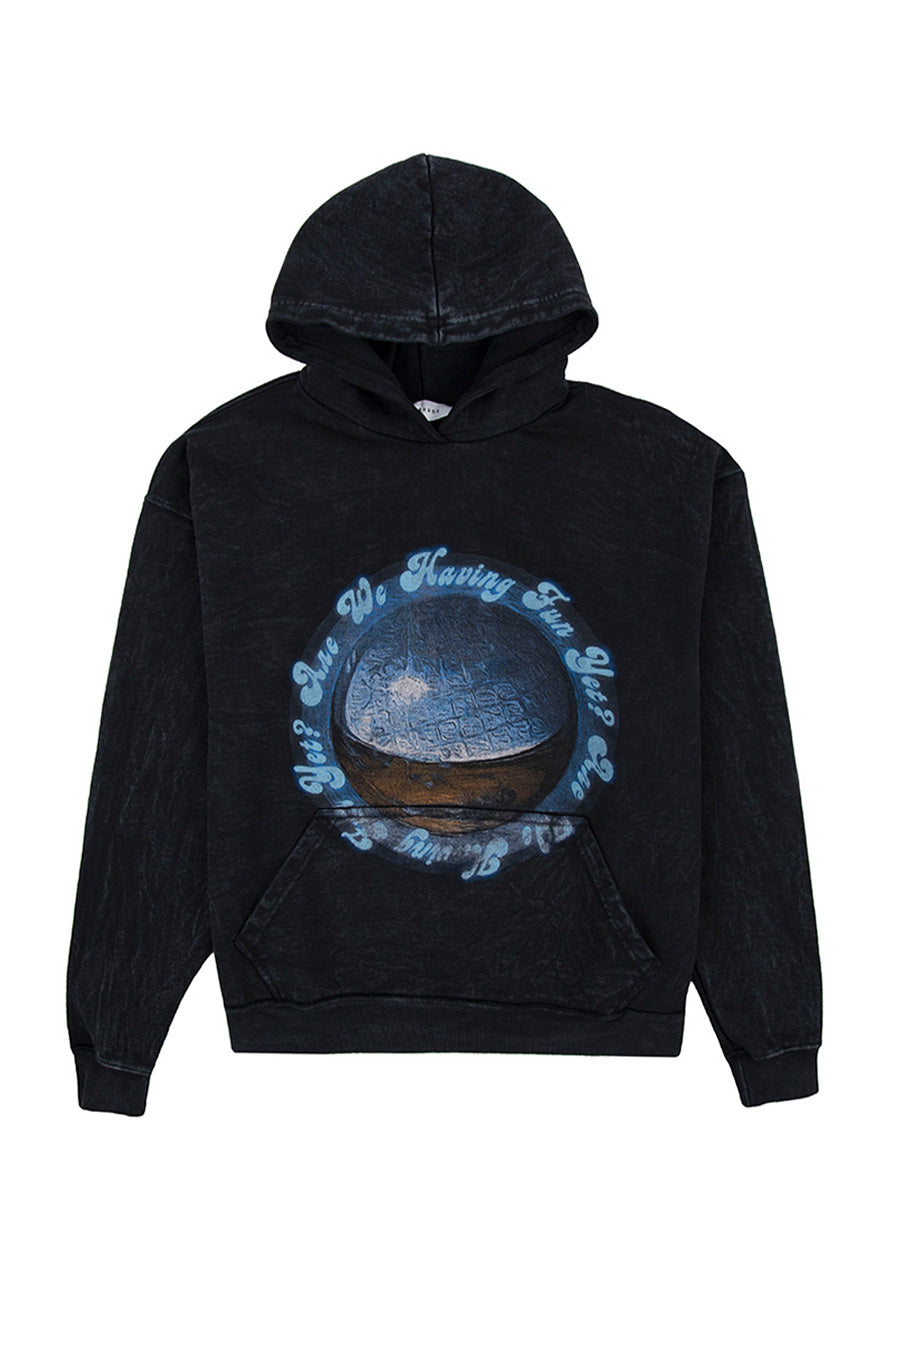 Rhude - Black Chrome Memory Hoodie | 1032 SPACE